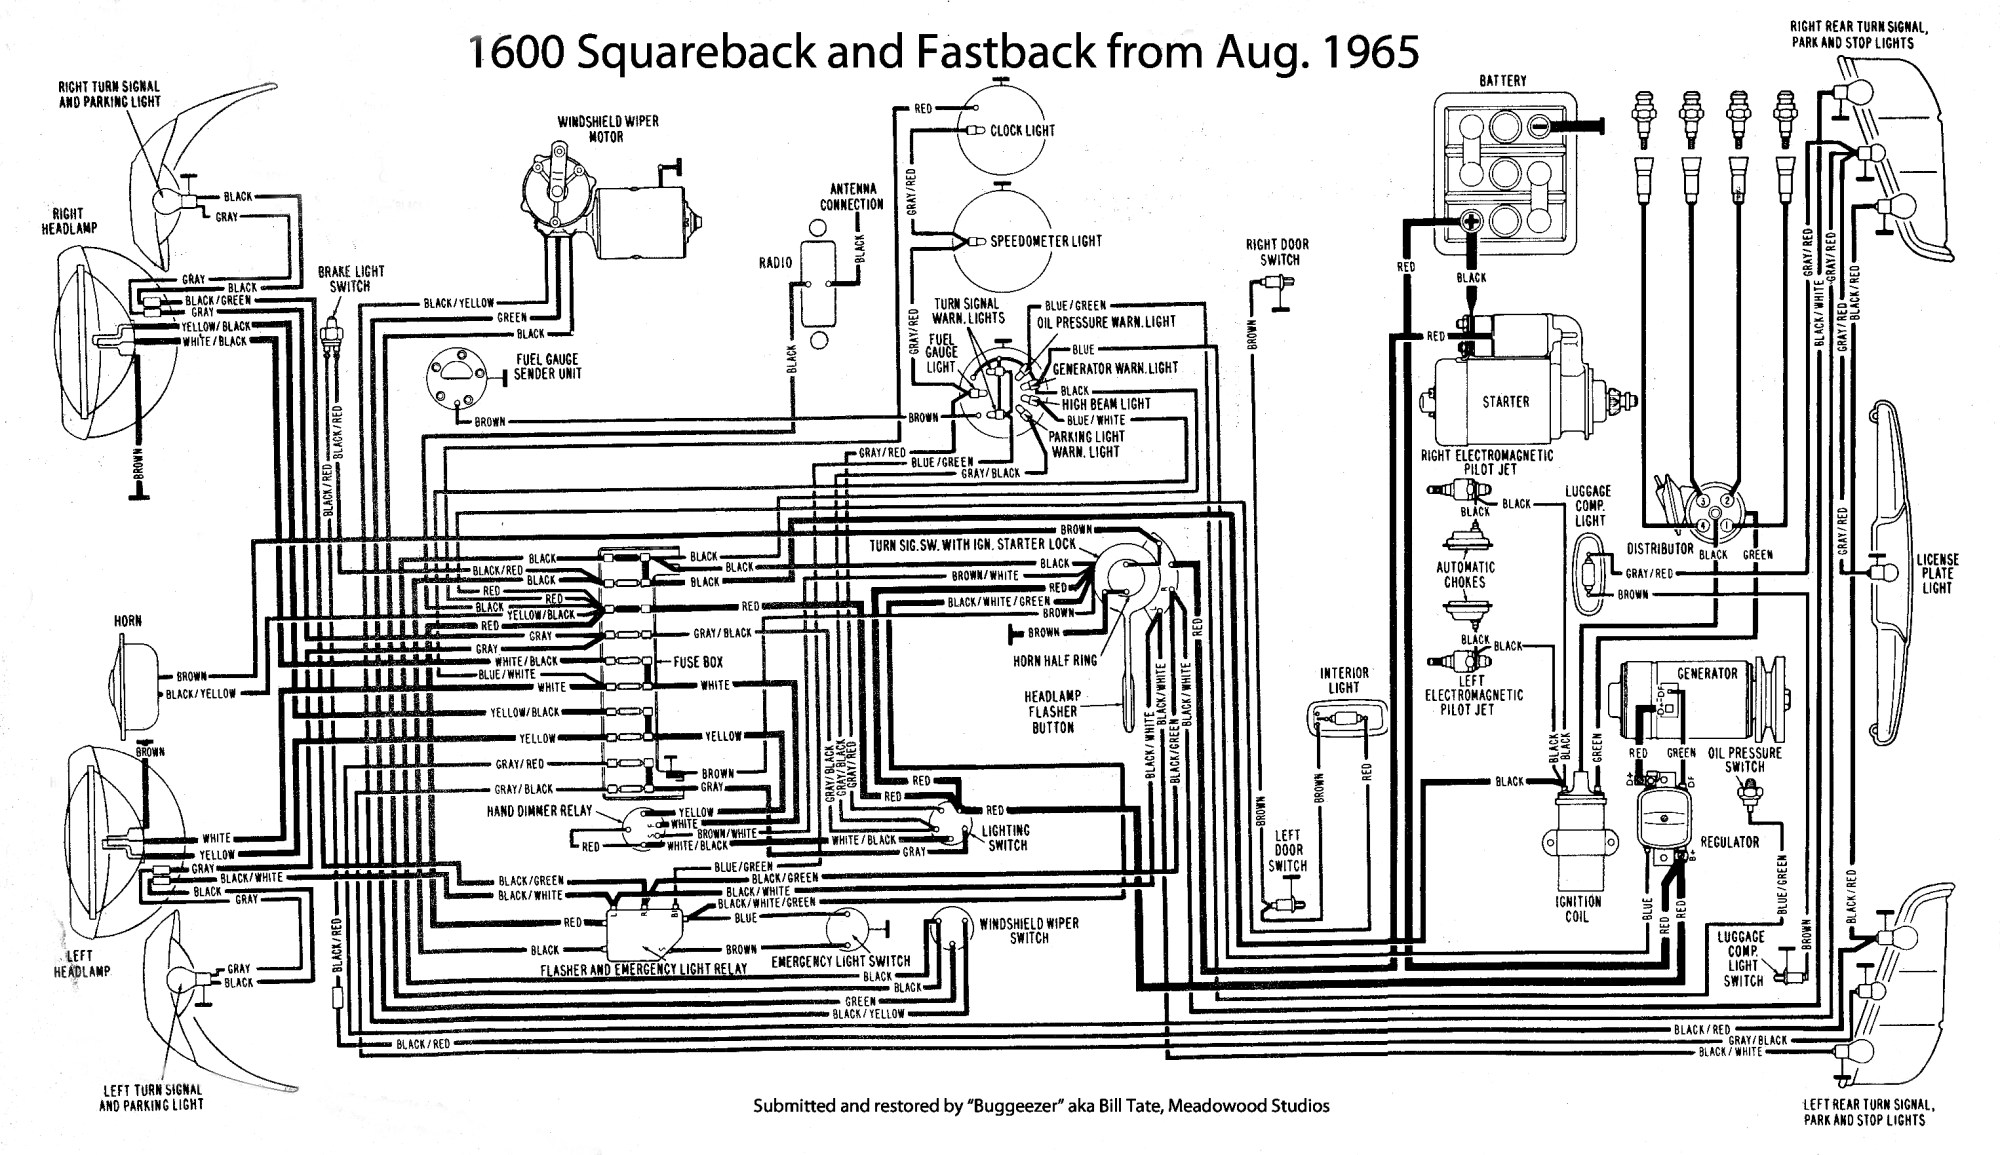 hight resolution of vw pat 3 6 engine diagram 9 10 stromoeko de u2022vw pat 3 6 engine